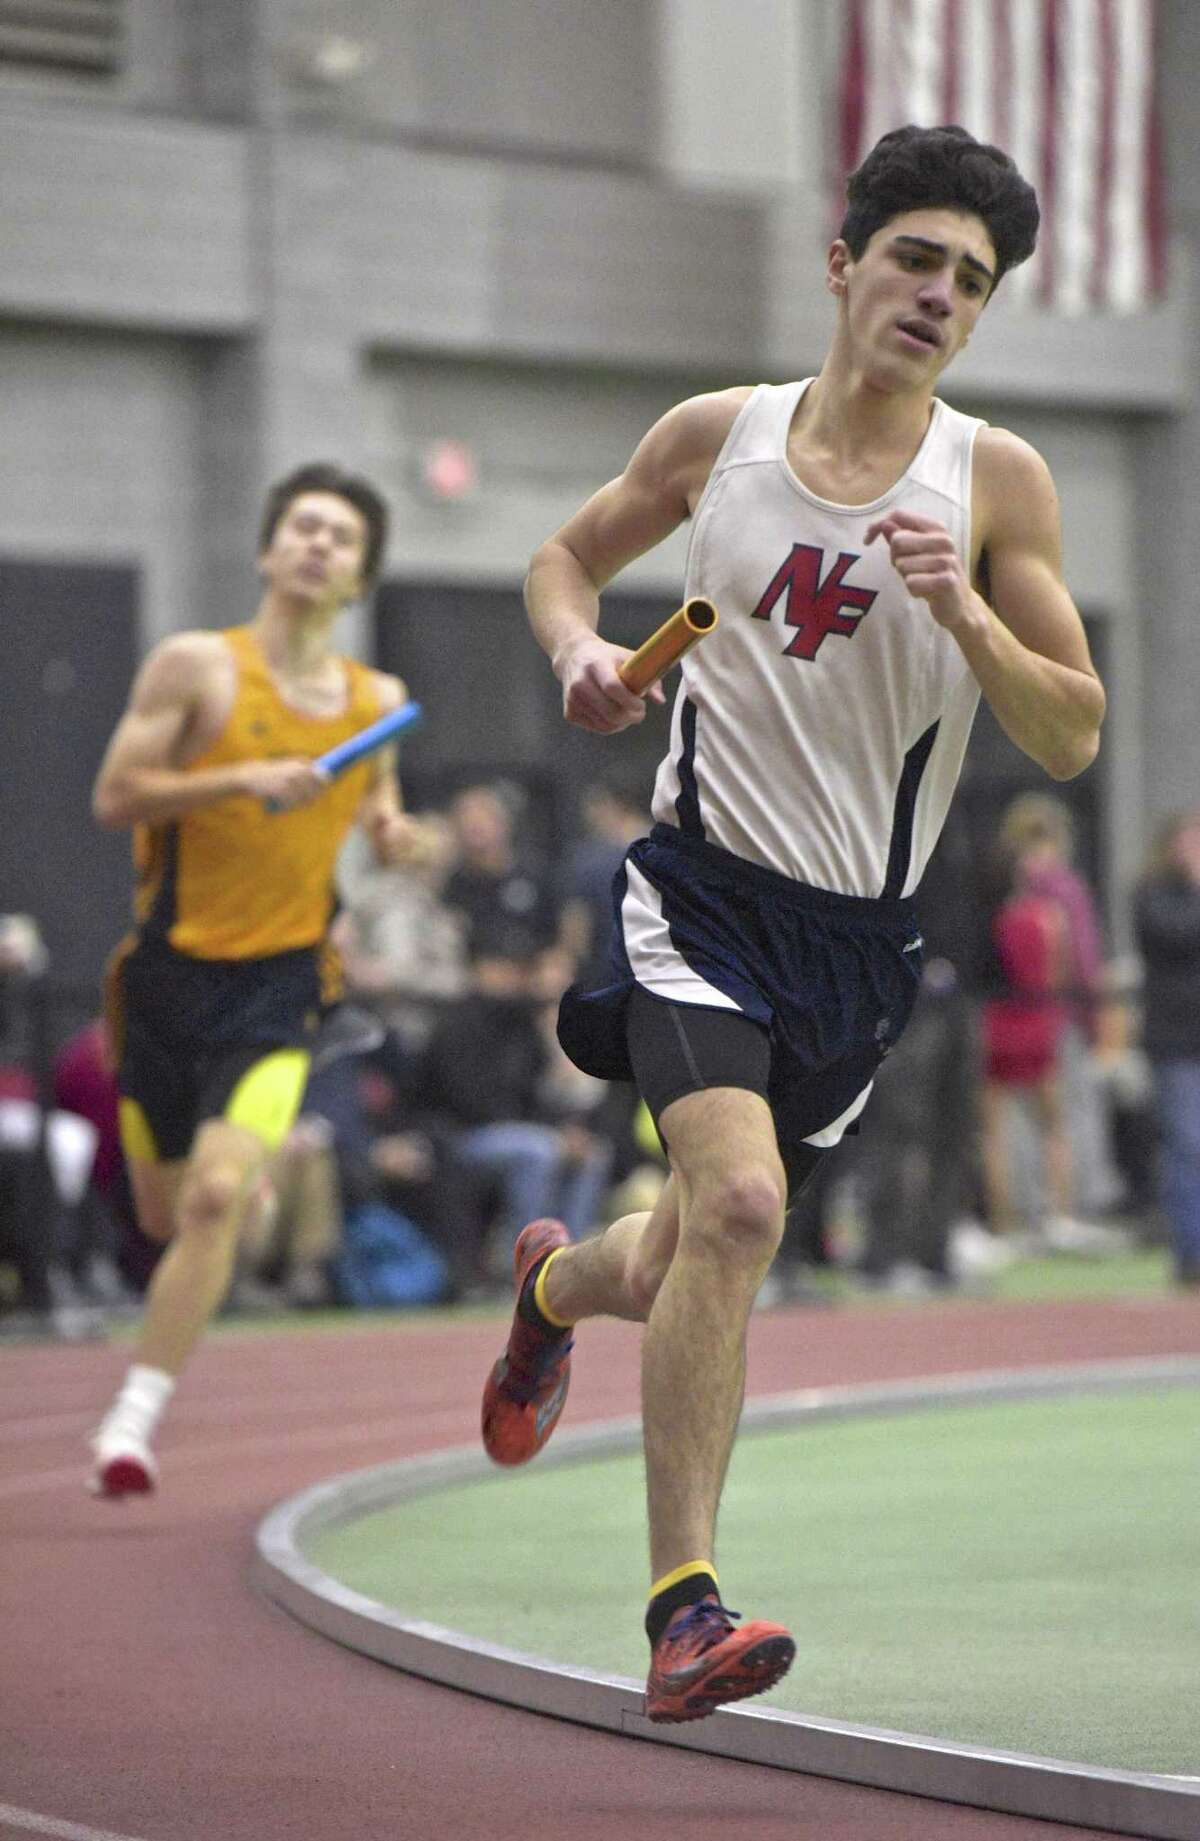 New Fairfield's Anthony Golino competes in the 4 x 800 meter relay in the SWC boys indoor track championship at Floyd Little Athletic Center, New Haven, Conn, on Saturday night, February 3, 2018.